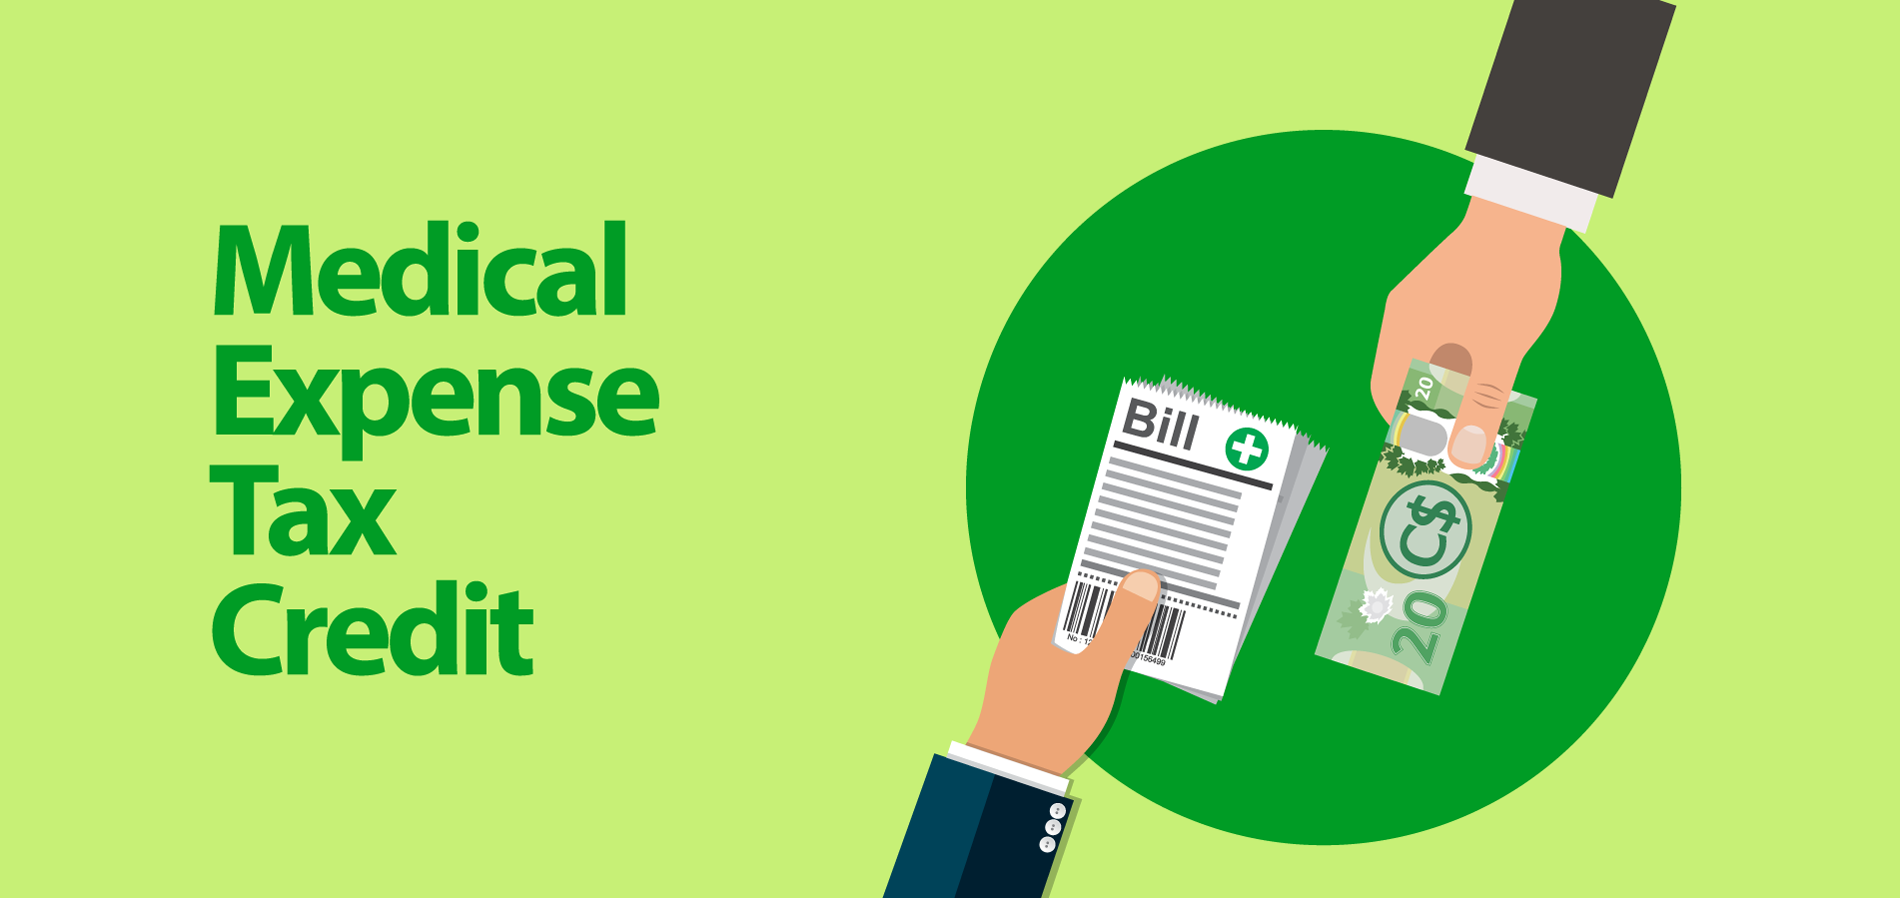 How does the Medical Expense Tax Credit work in Canada